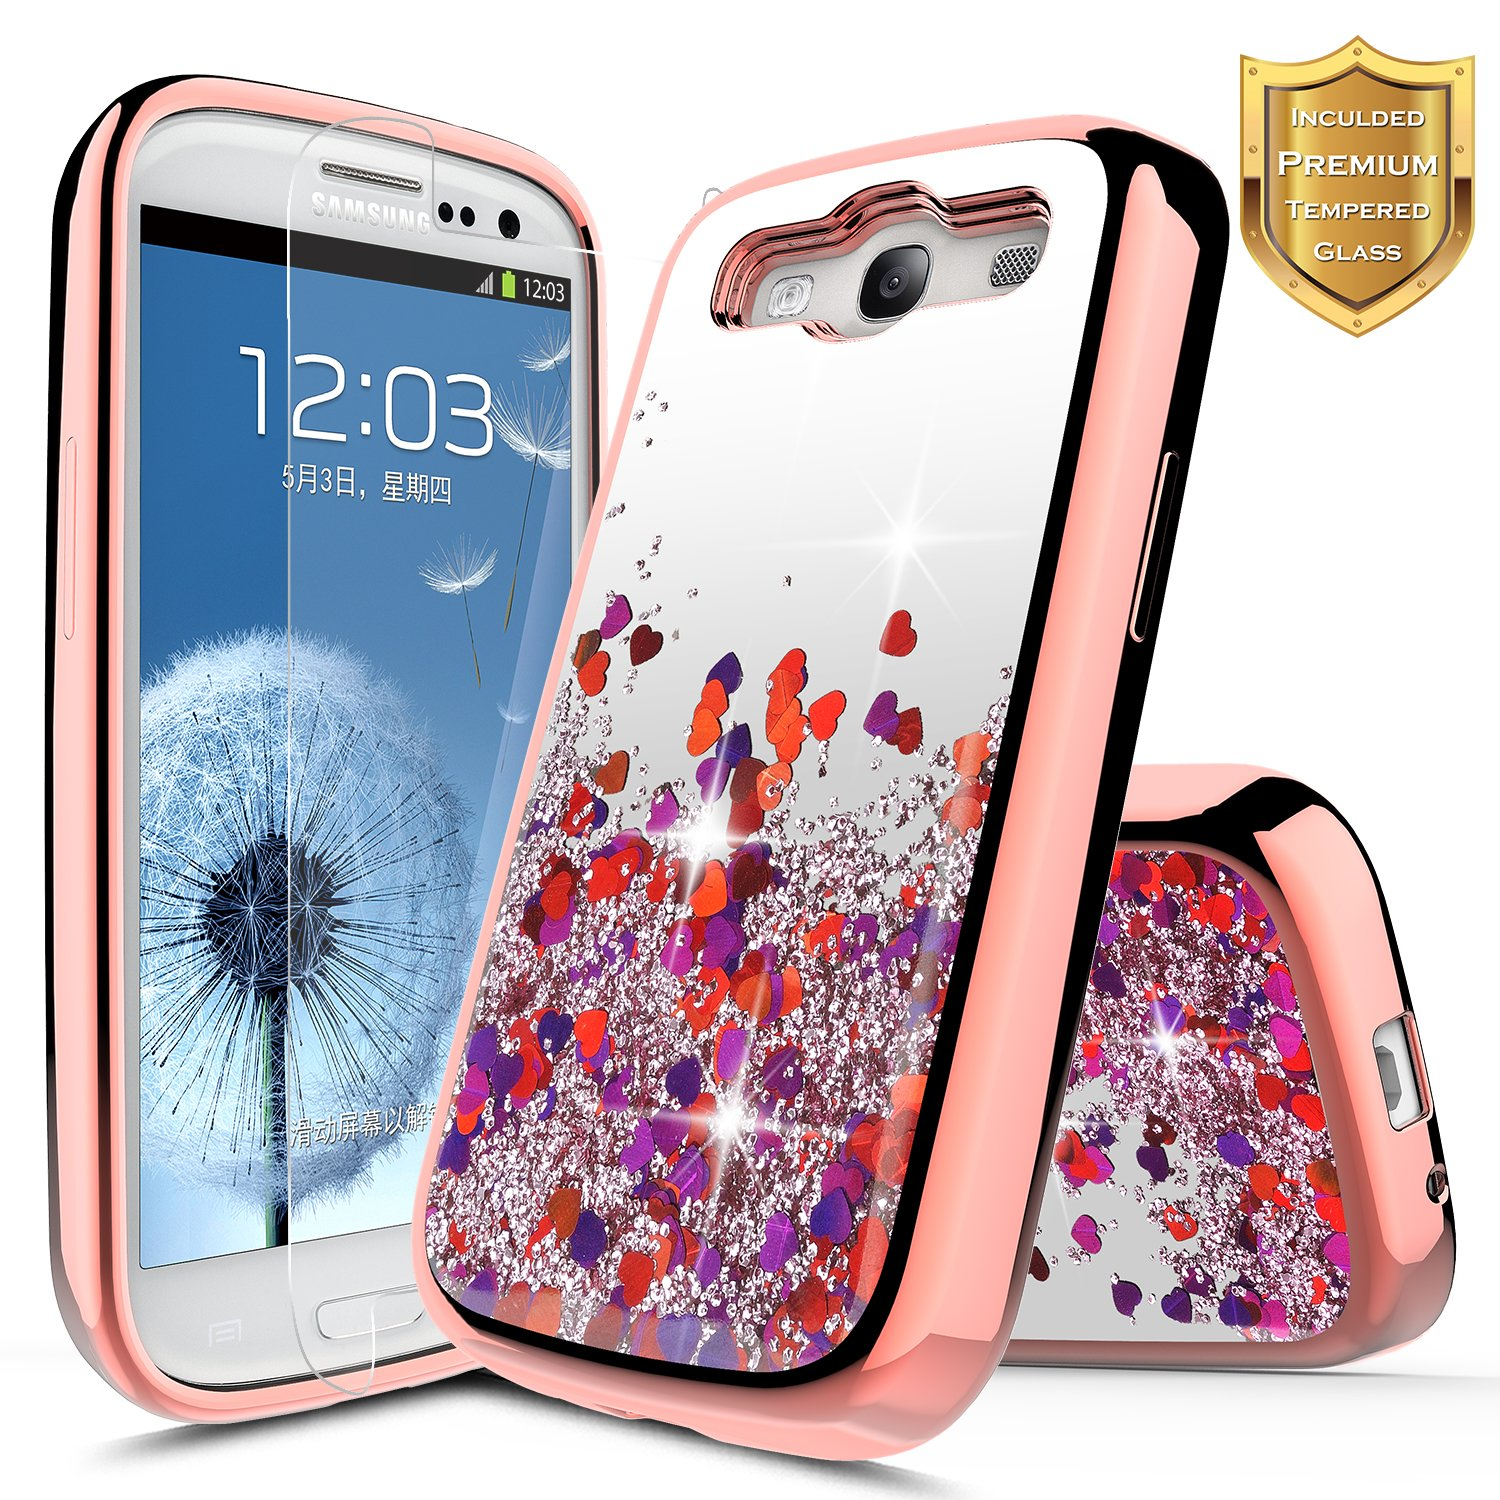 Galaxy S3 Case w/[Tempered Glass Screen Protector], NageBee Glitter Liquid Quicksand Waterfall Flowing Sparkle Shiny Bling Girls Cute Case for Galaxy ...